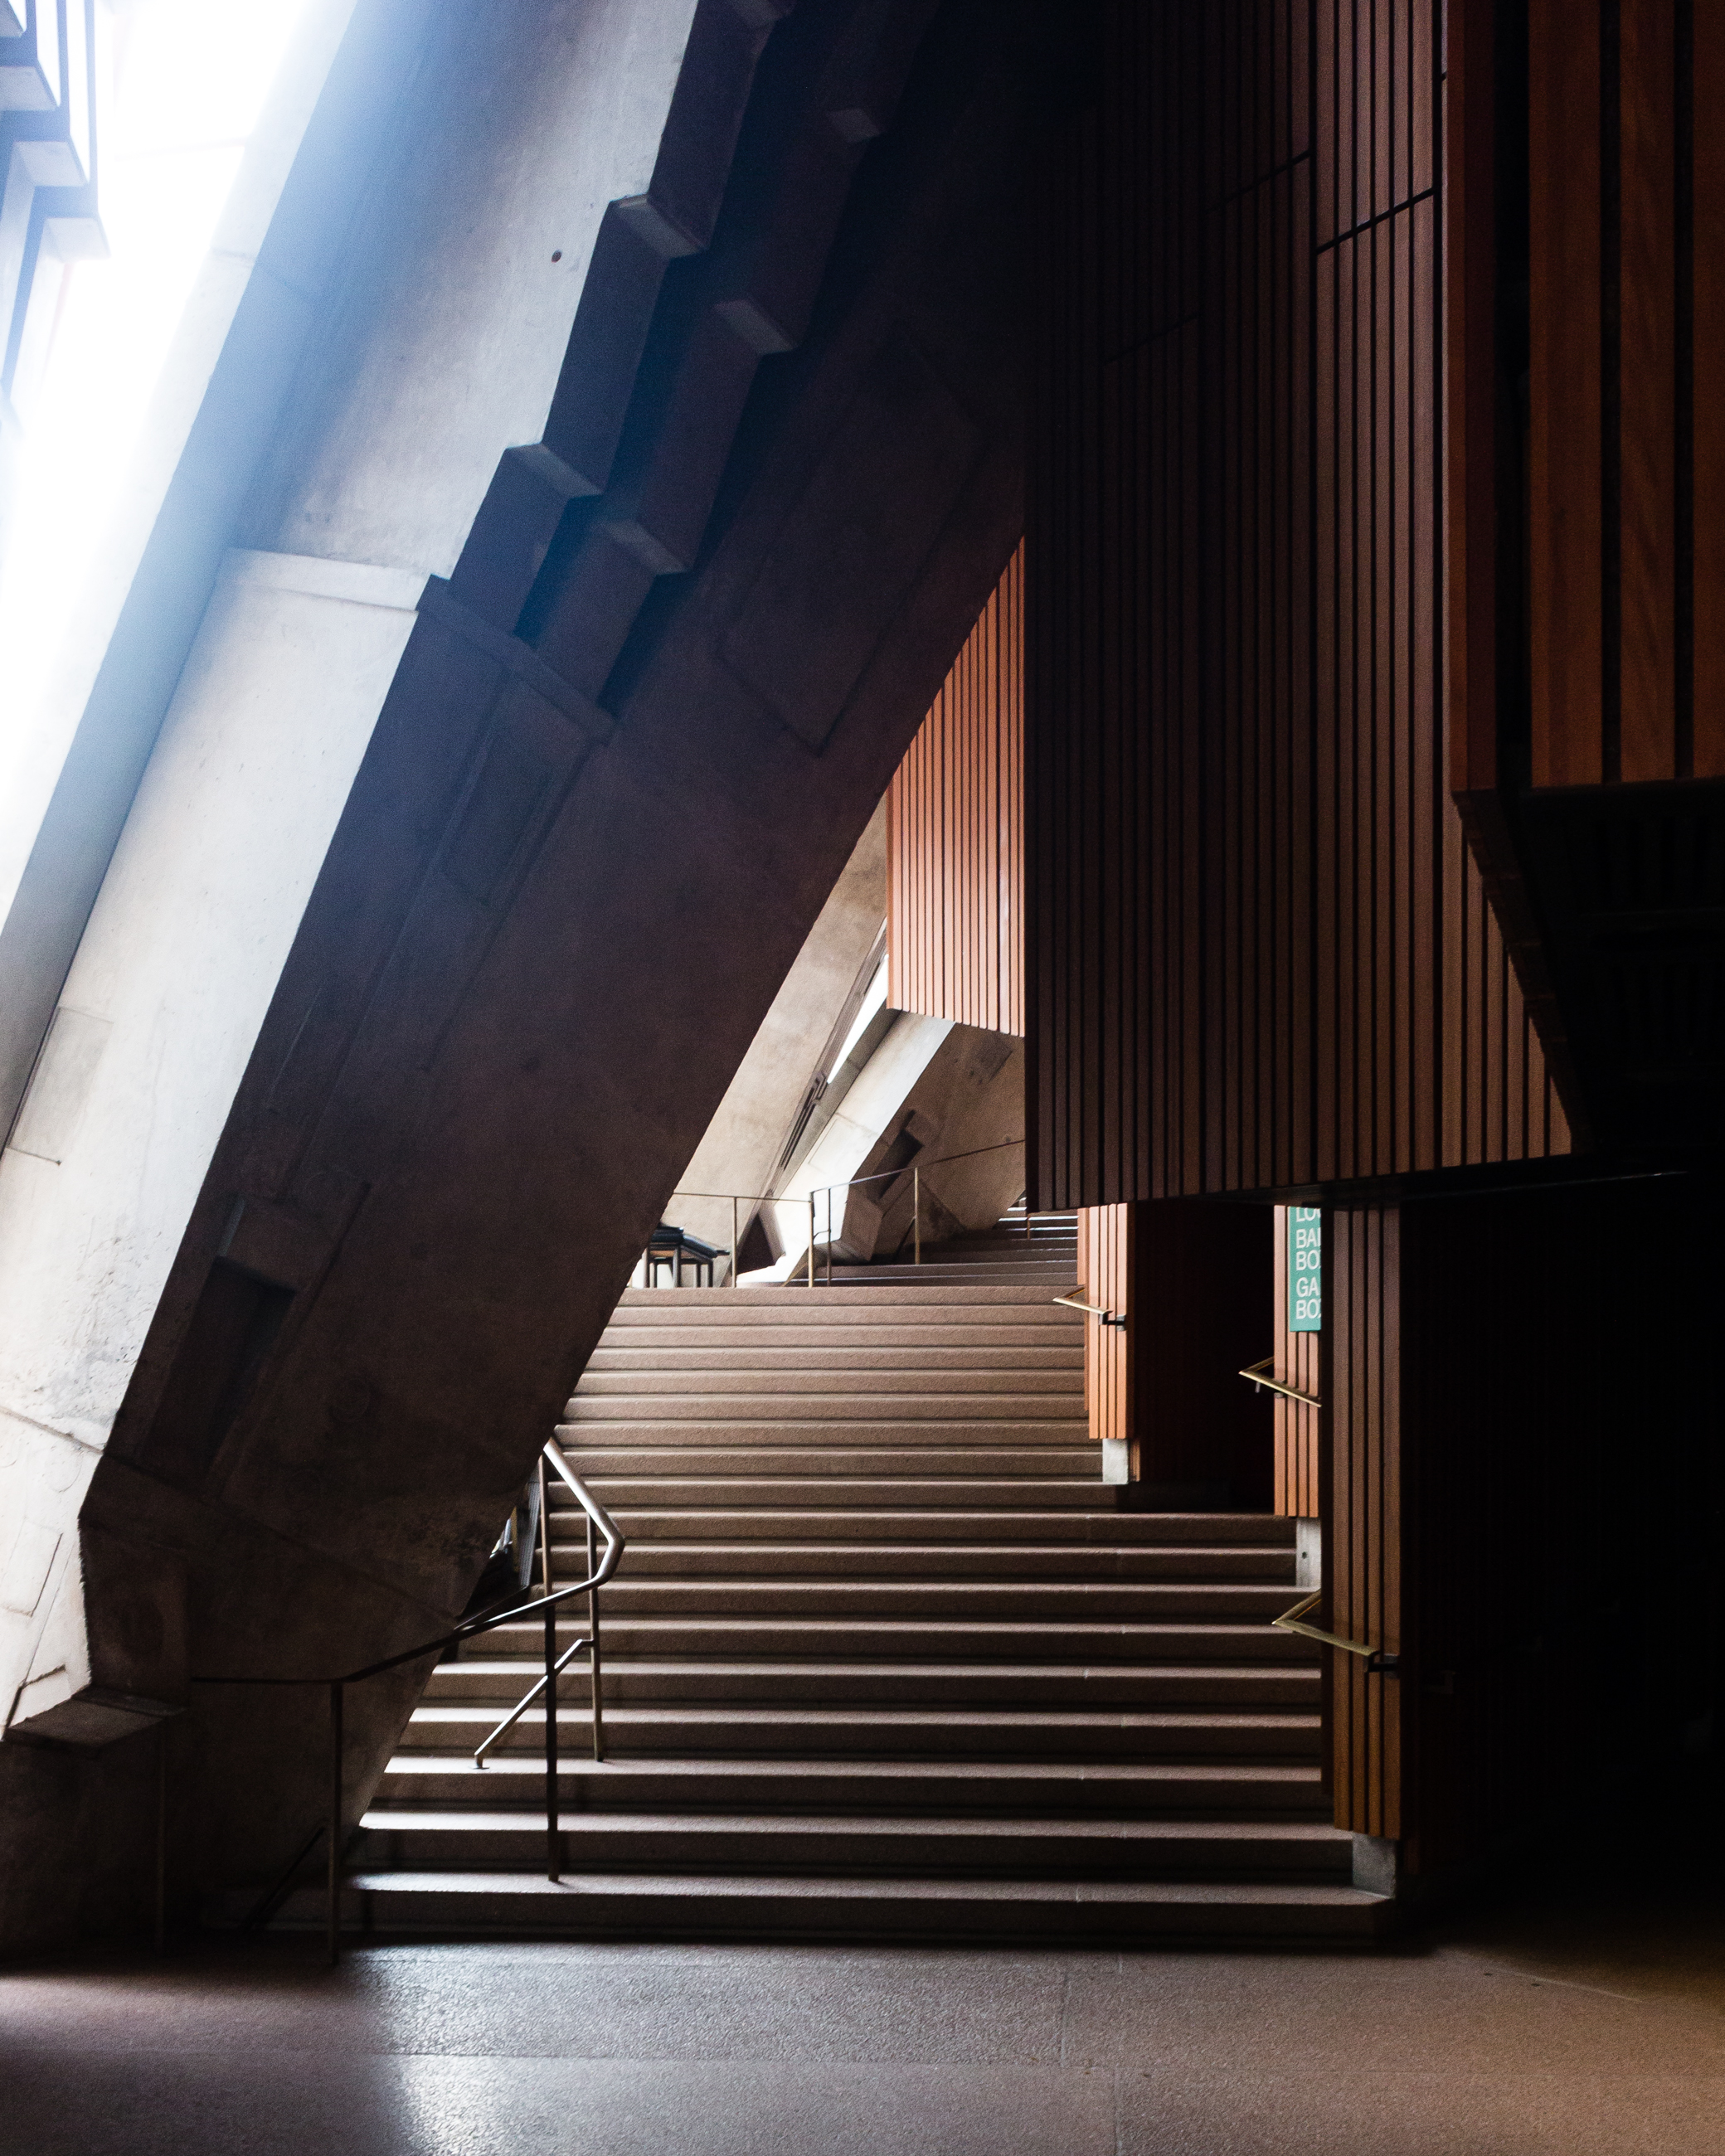 Sydney Opera House - Photography by Mike Dugenio (3 of 9).jpg